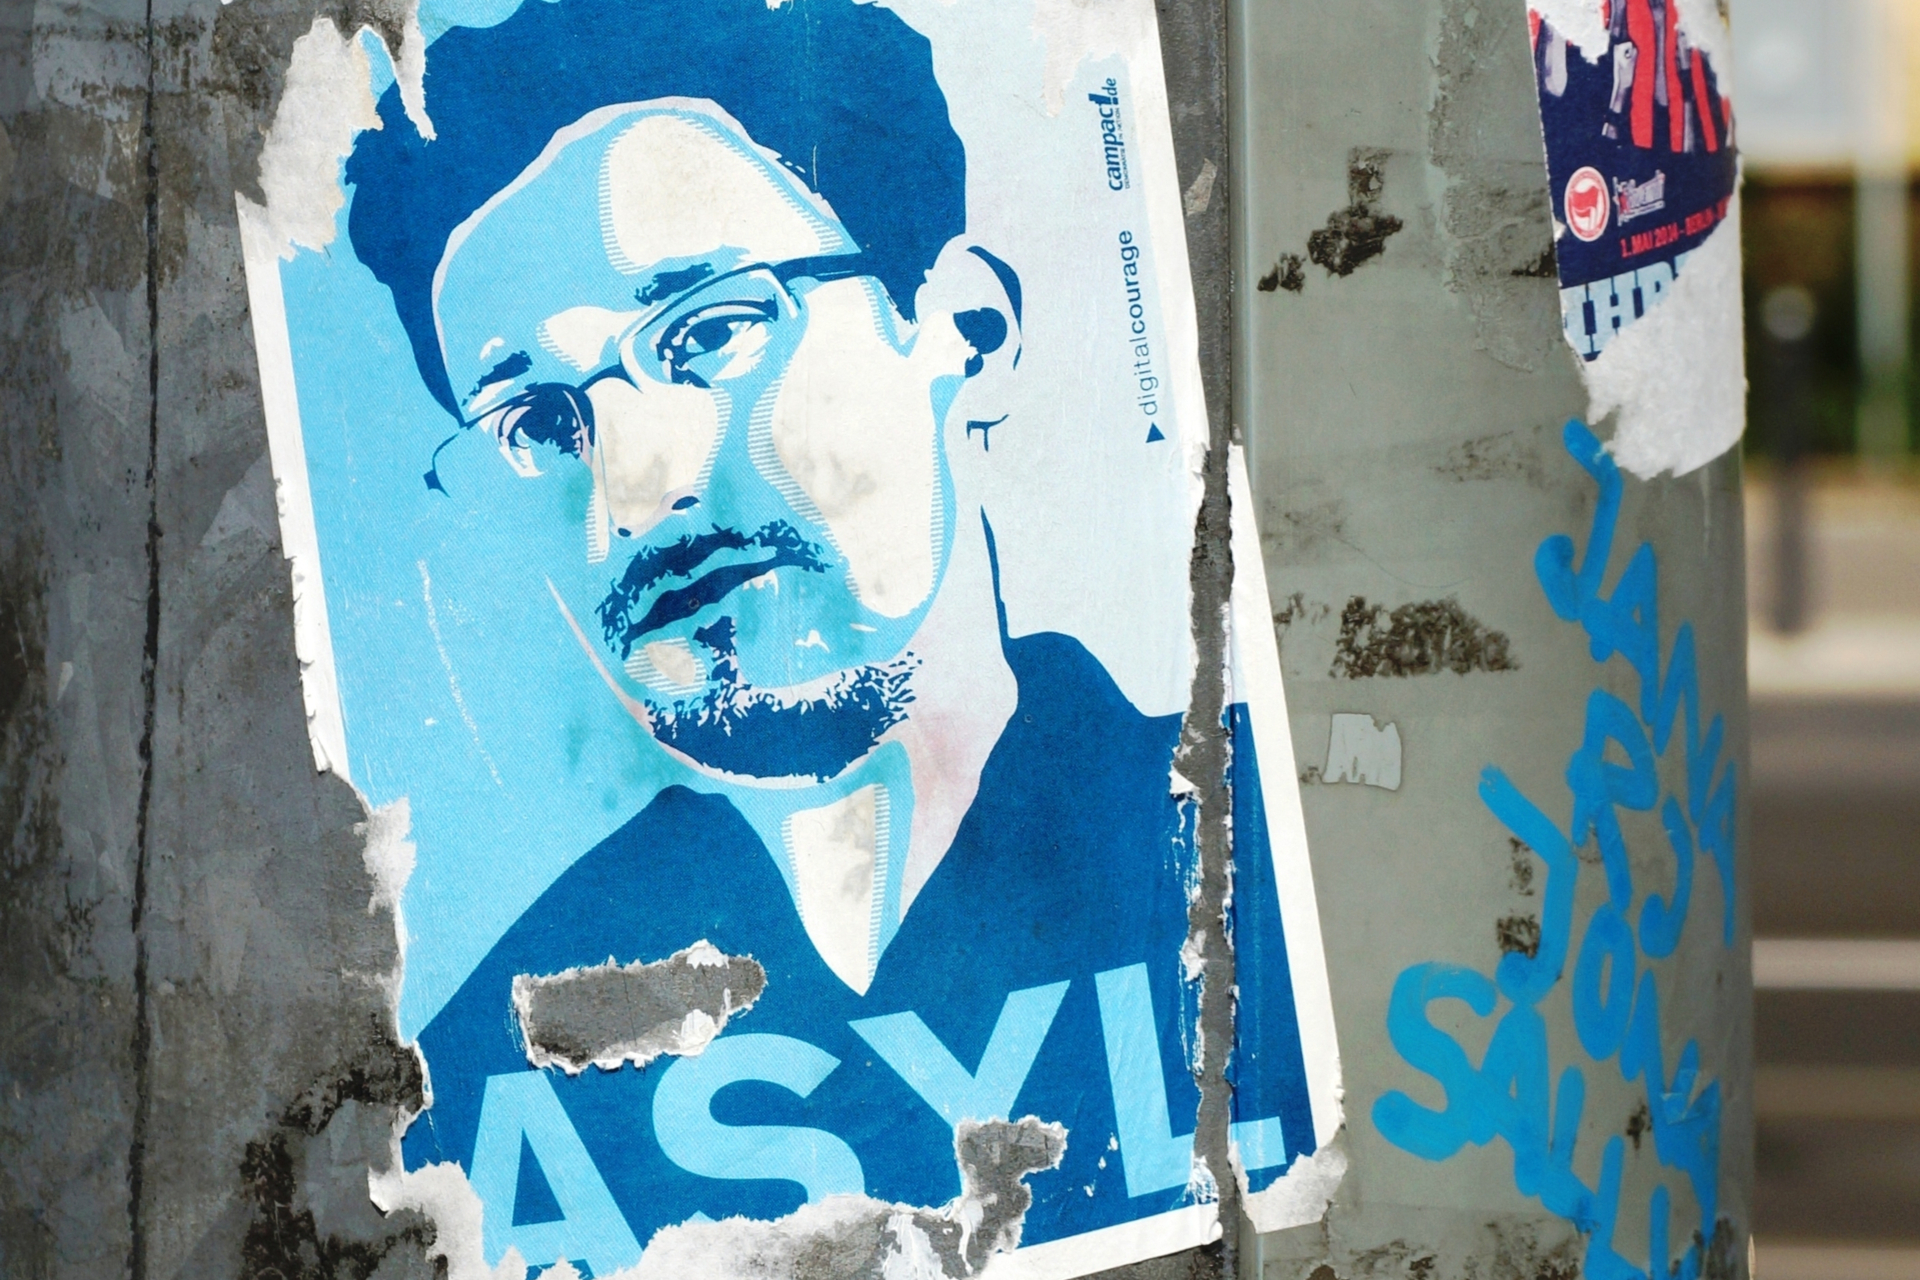 The new Edward Snowden book is being used to spread malware